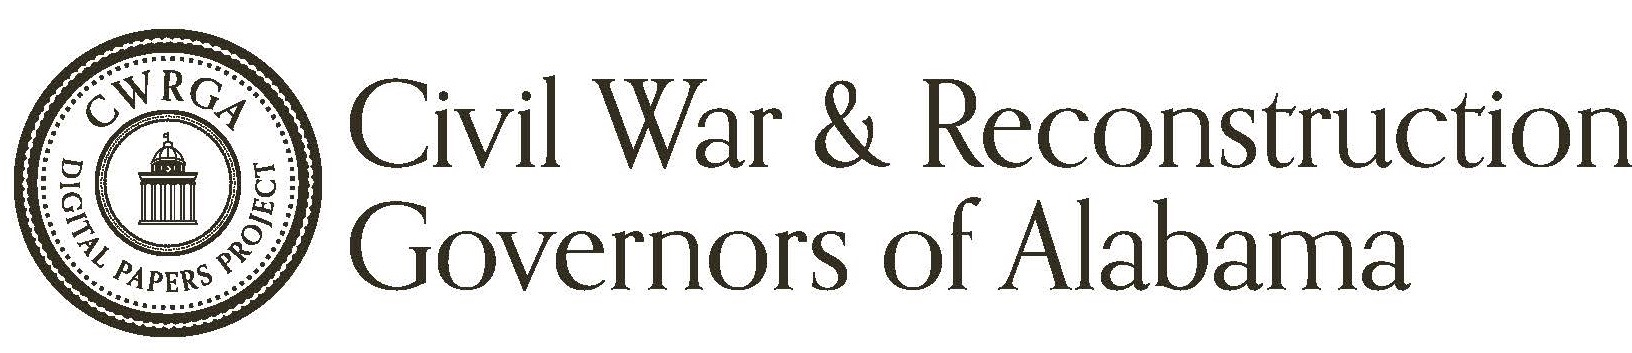 Civil War and Reconstruction Governors of Alabama Digital Papers Project